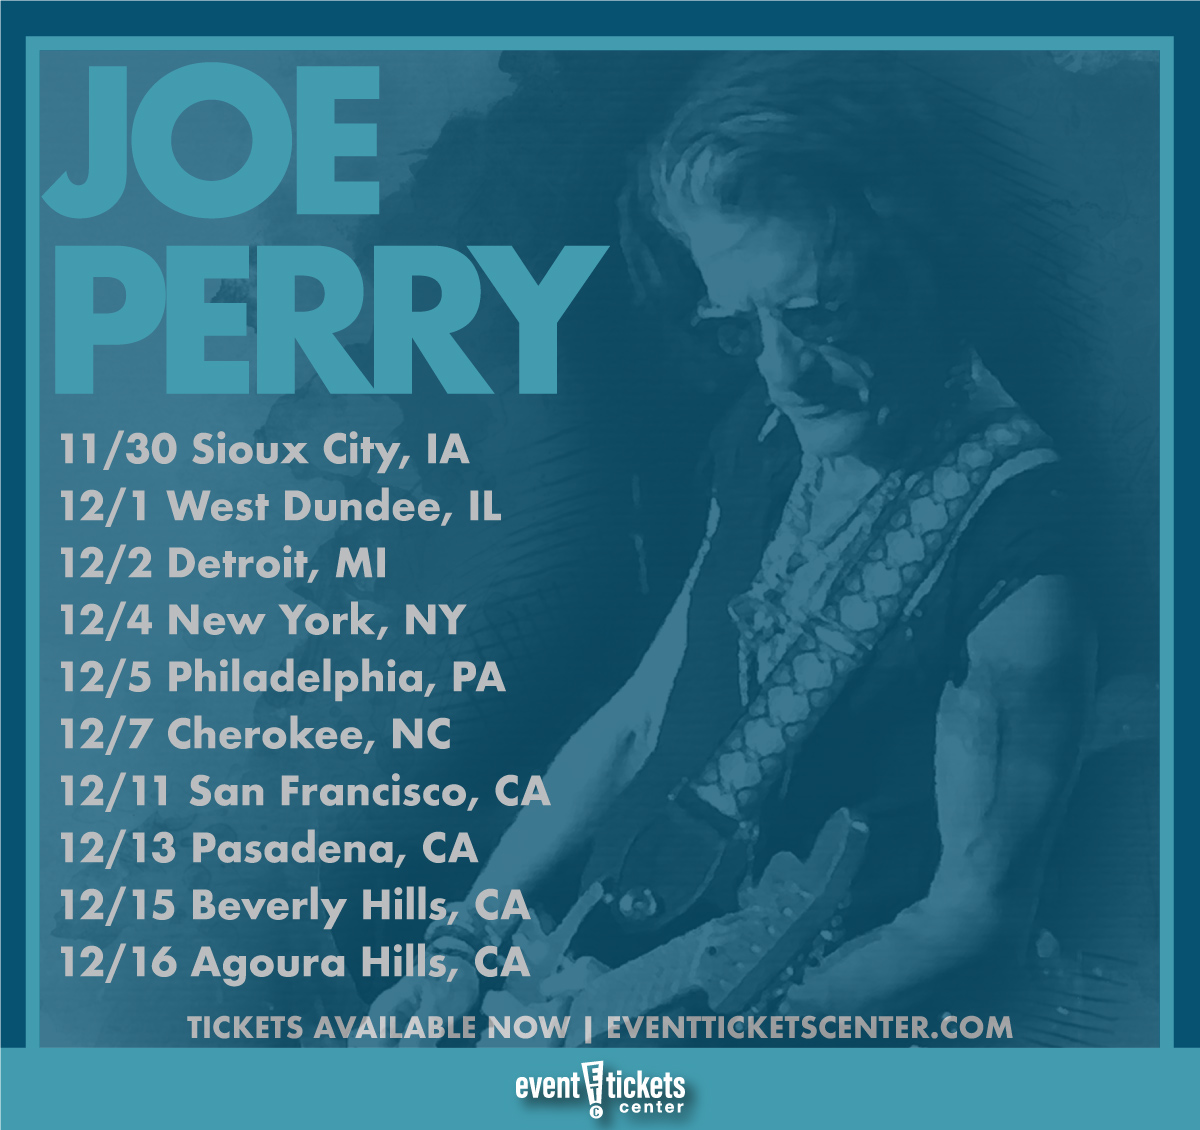 joe perry tour map